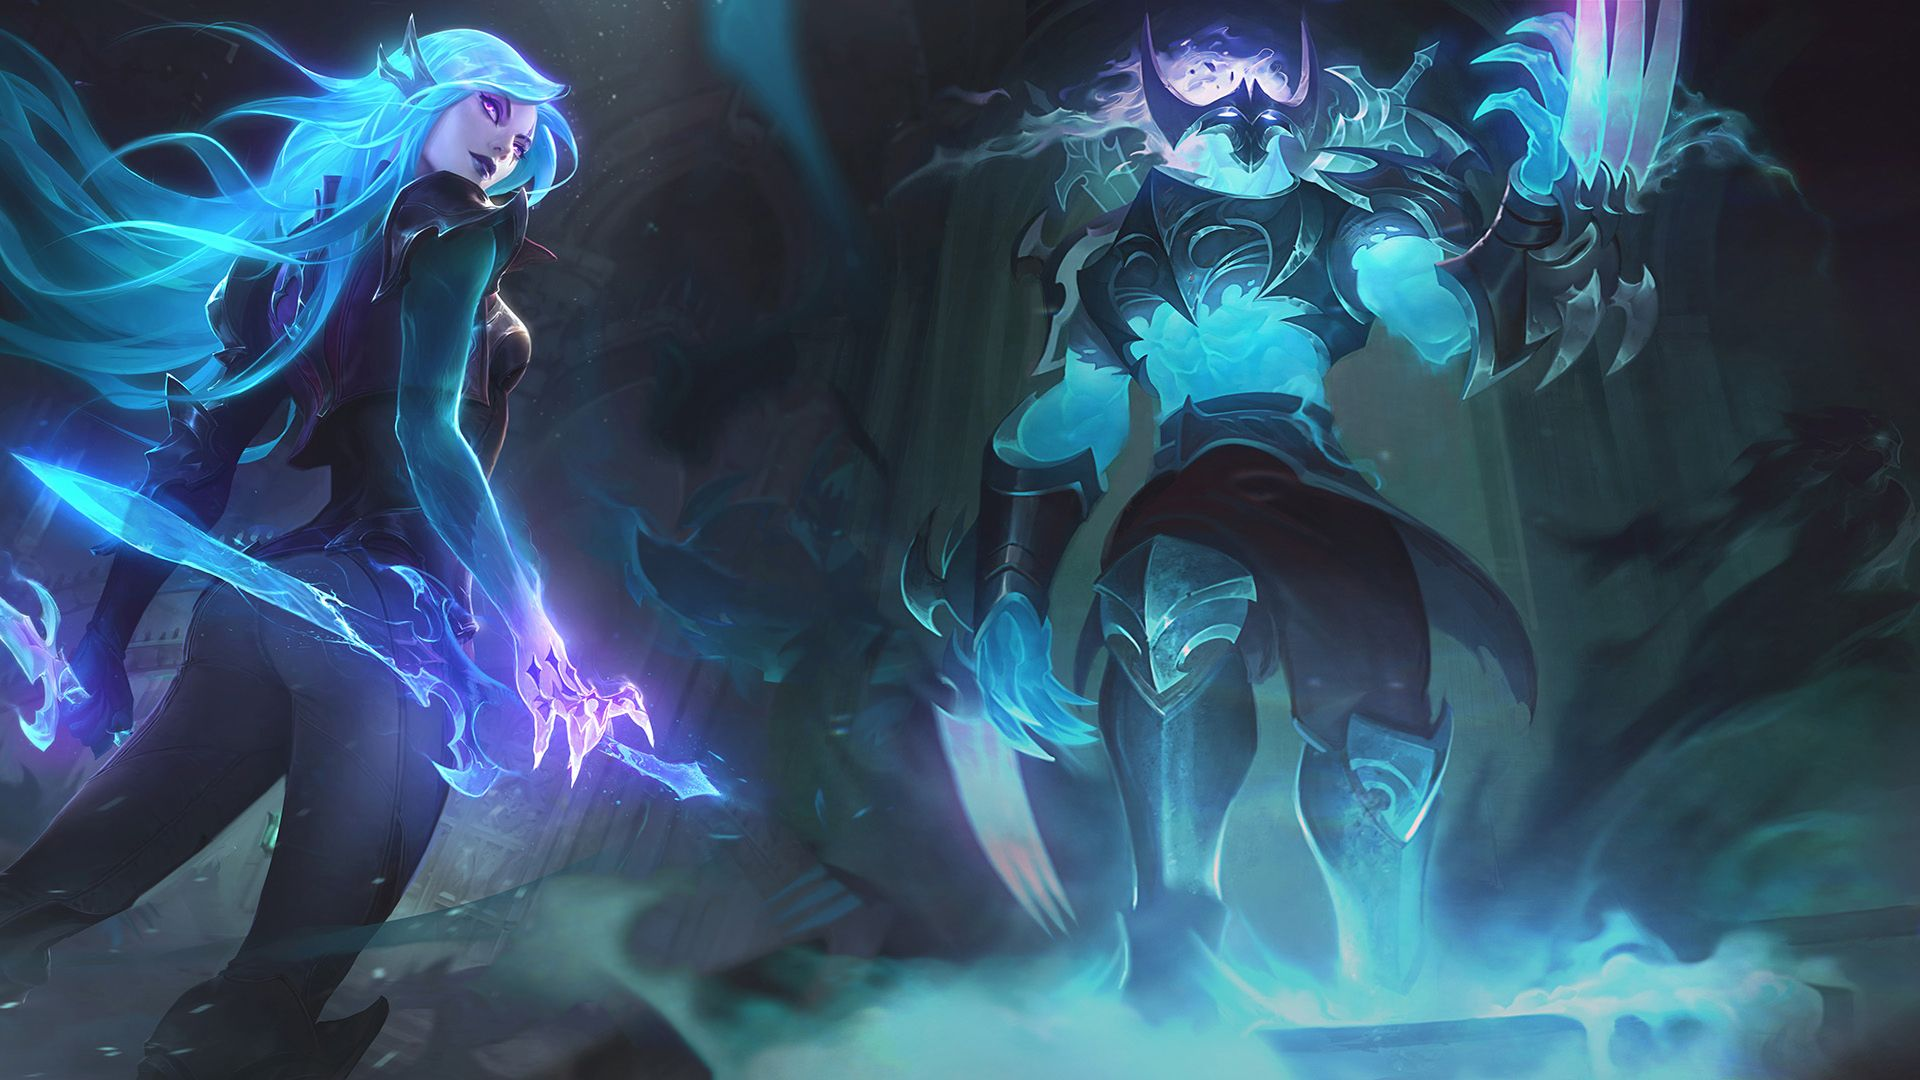 Katarina And Zed From League Of Legends 1920x1080 League Of Legends League Of Legends Game Mythical Creatures